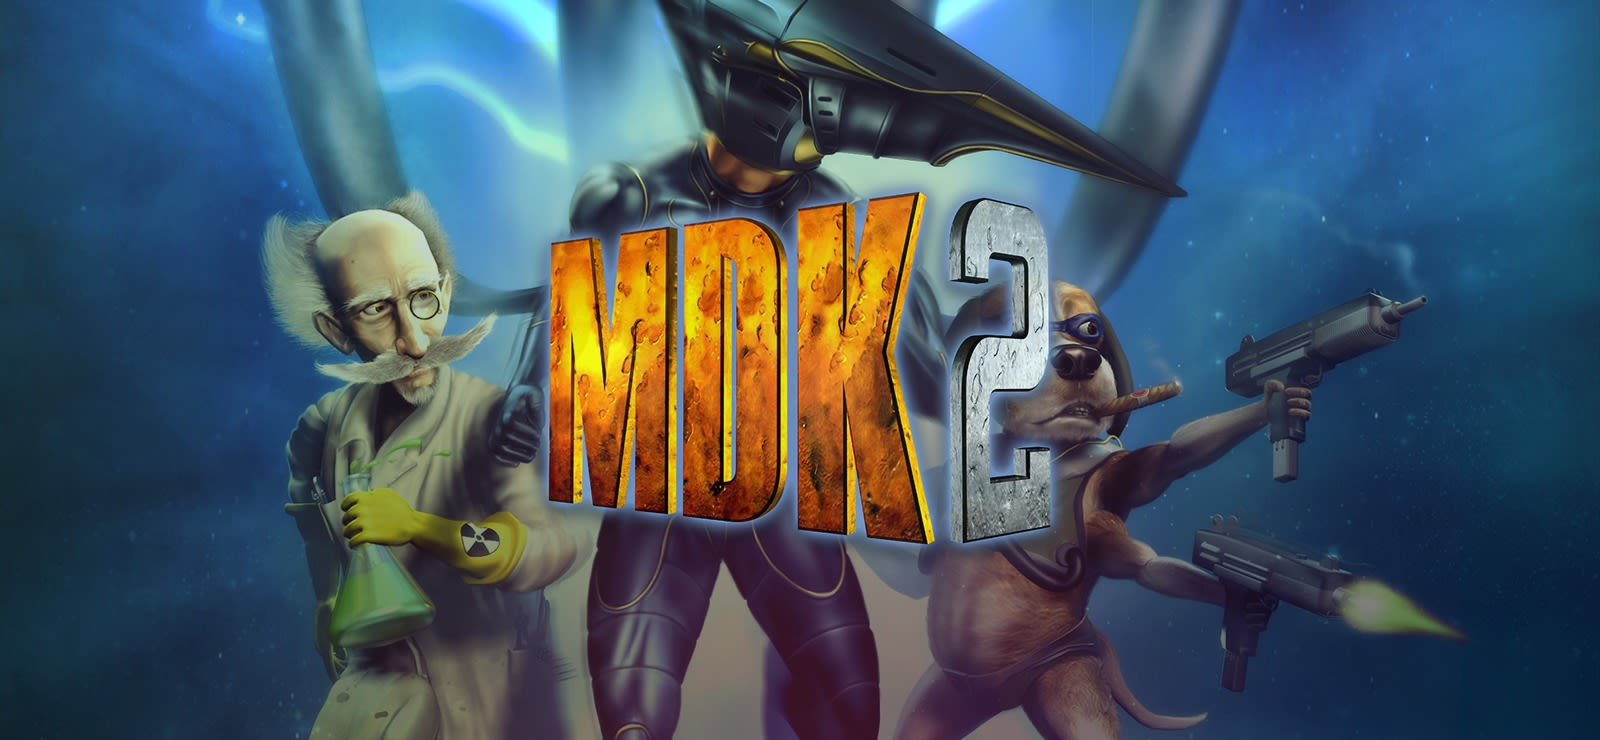 Mdk 2 varies-with-device